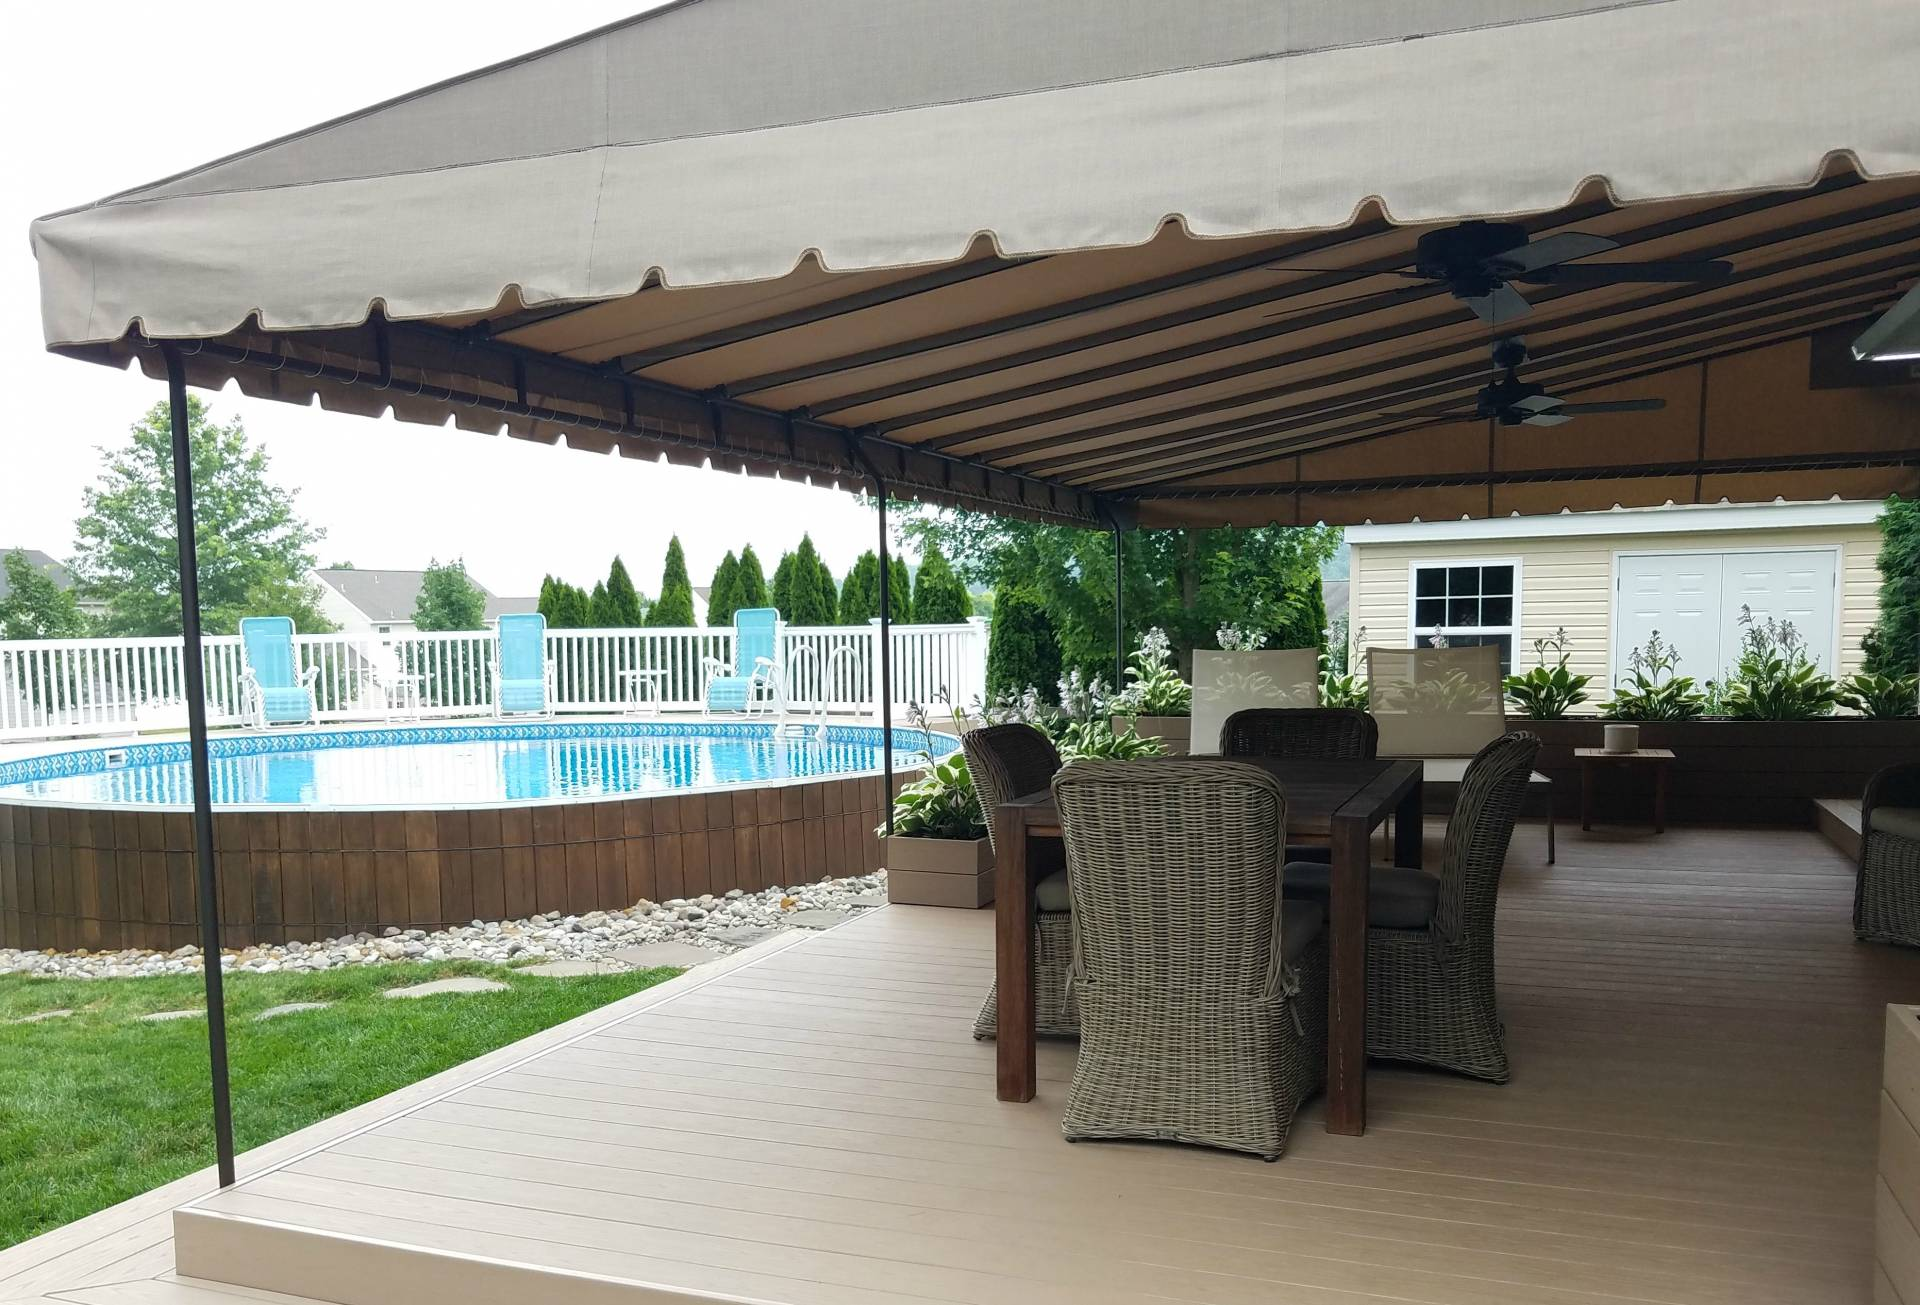 stripe sunbrella awnings stationary living for outdoor wall cooper decks pin black deck awning mounted